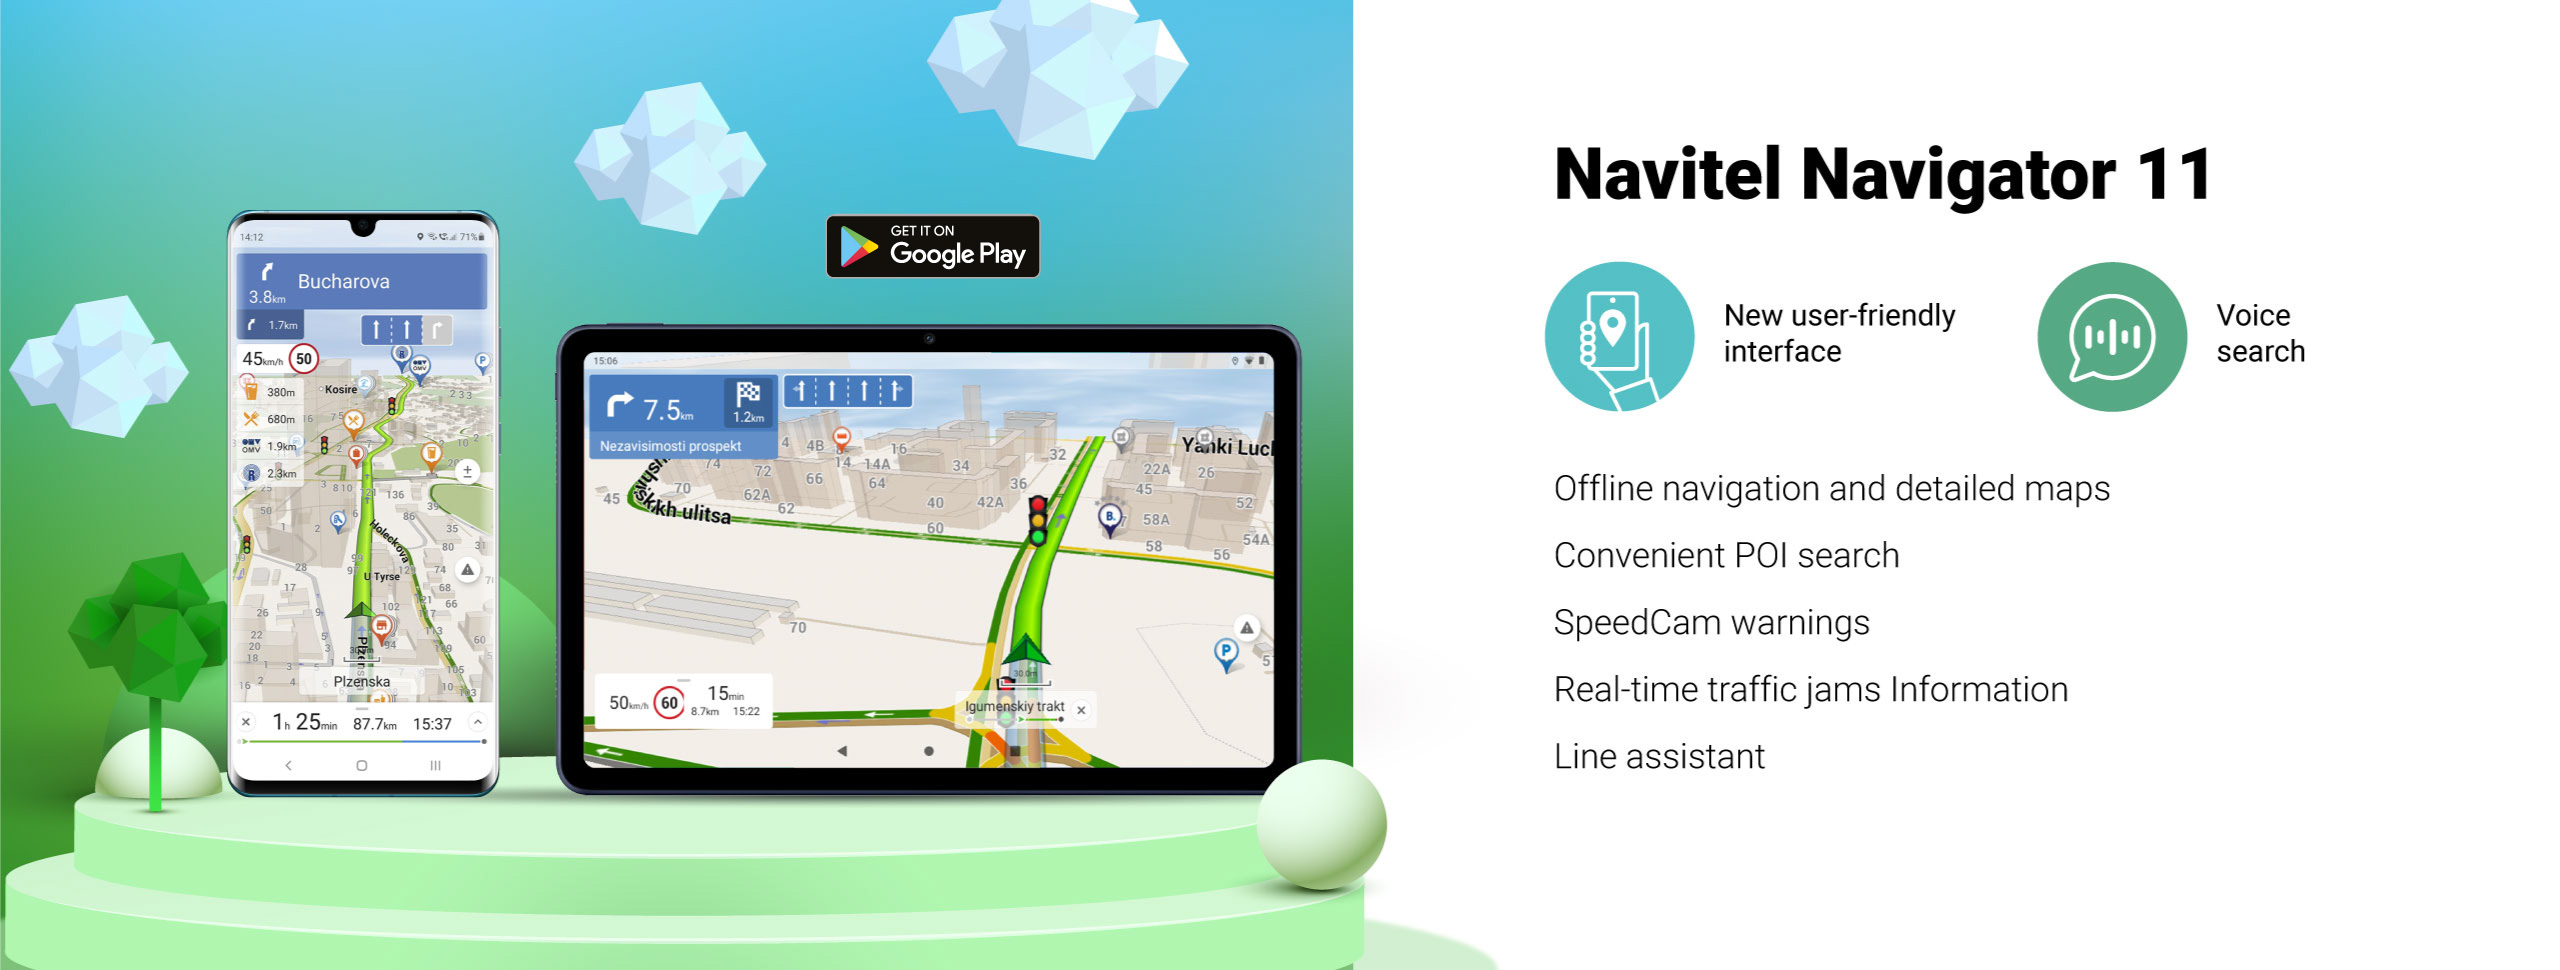 Navitel Navigator 11 for Android